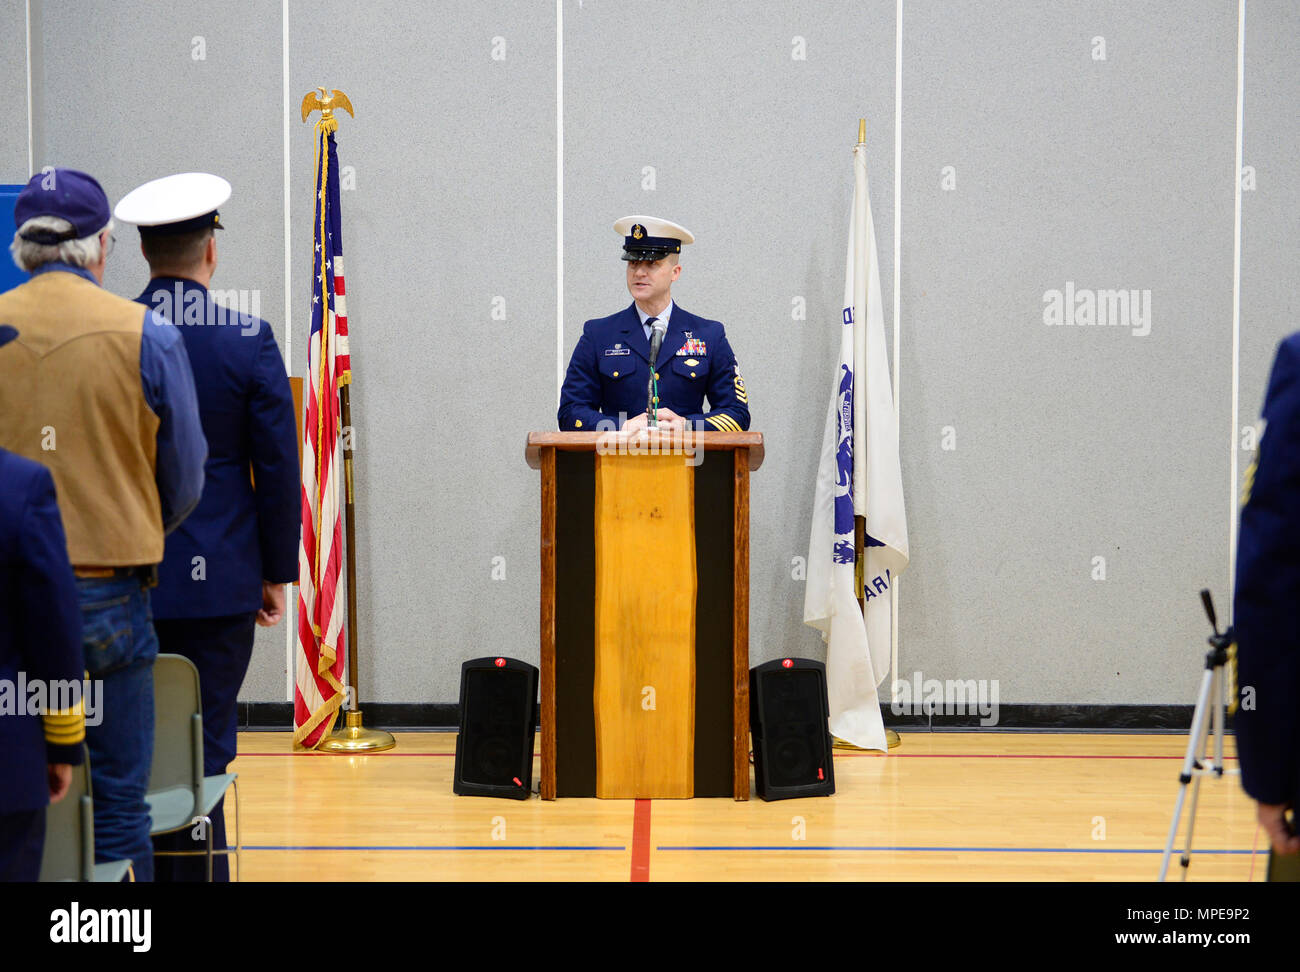 Senior Chief Petty Officer Cory Wadley, the officer in charge of Coast Guard Station Quillayute River, delivers his remarks during a remembrance ceremony at his station in La Push, Wash., Sunday, Feb 12, 2017. The remembrance ceremony honored the 20-year anniversary of the loss of three Coast Guardsmen aboard Coast Guard Motor Lifeboat 44363. U.S. Coast Guard photo by Chief Petty Officer Nick Ameen - Stock Image